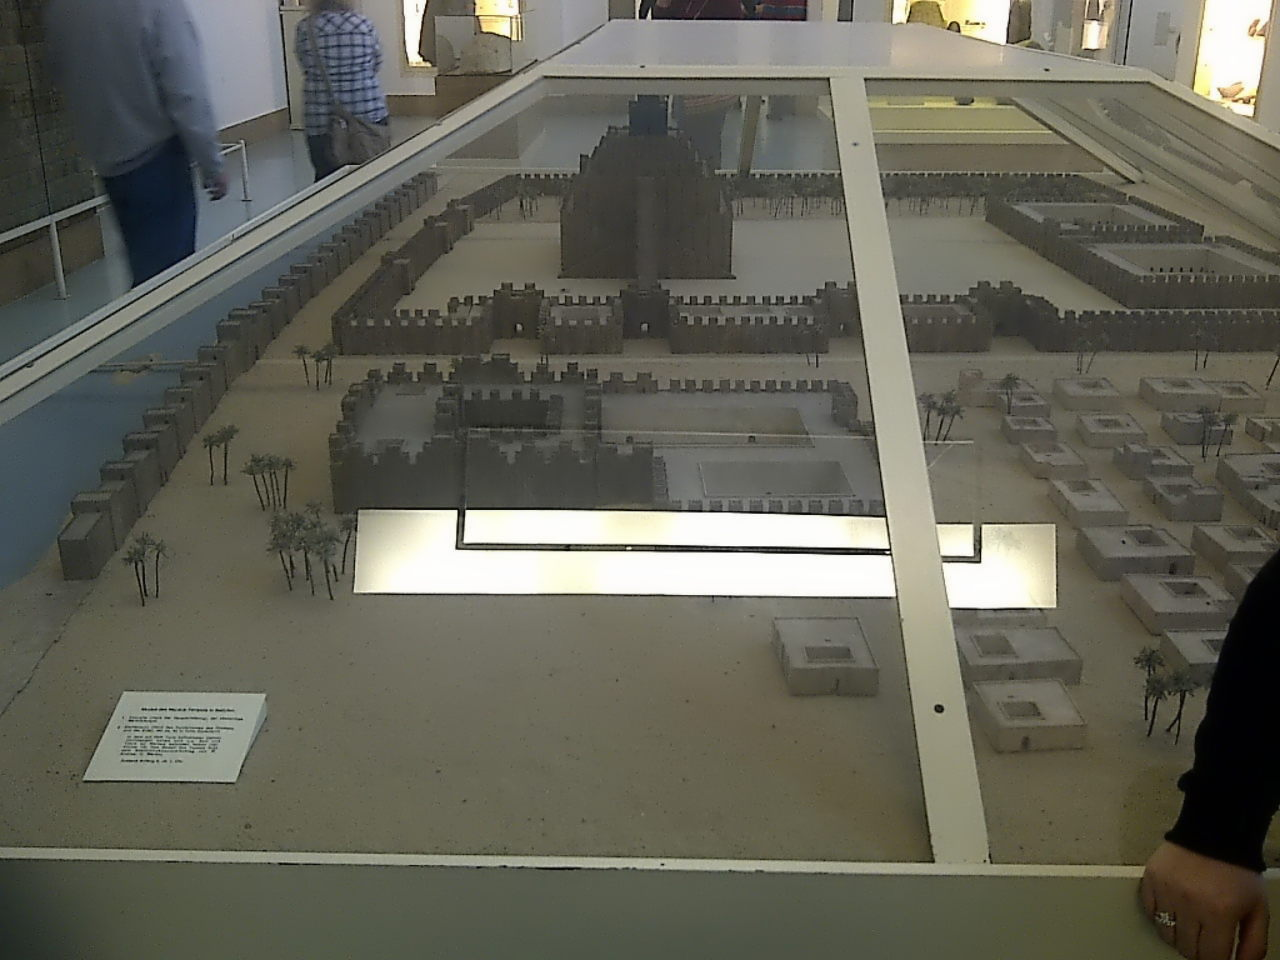 Pergamon Museum, City of Uruk with Ziggurat model